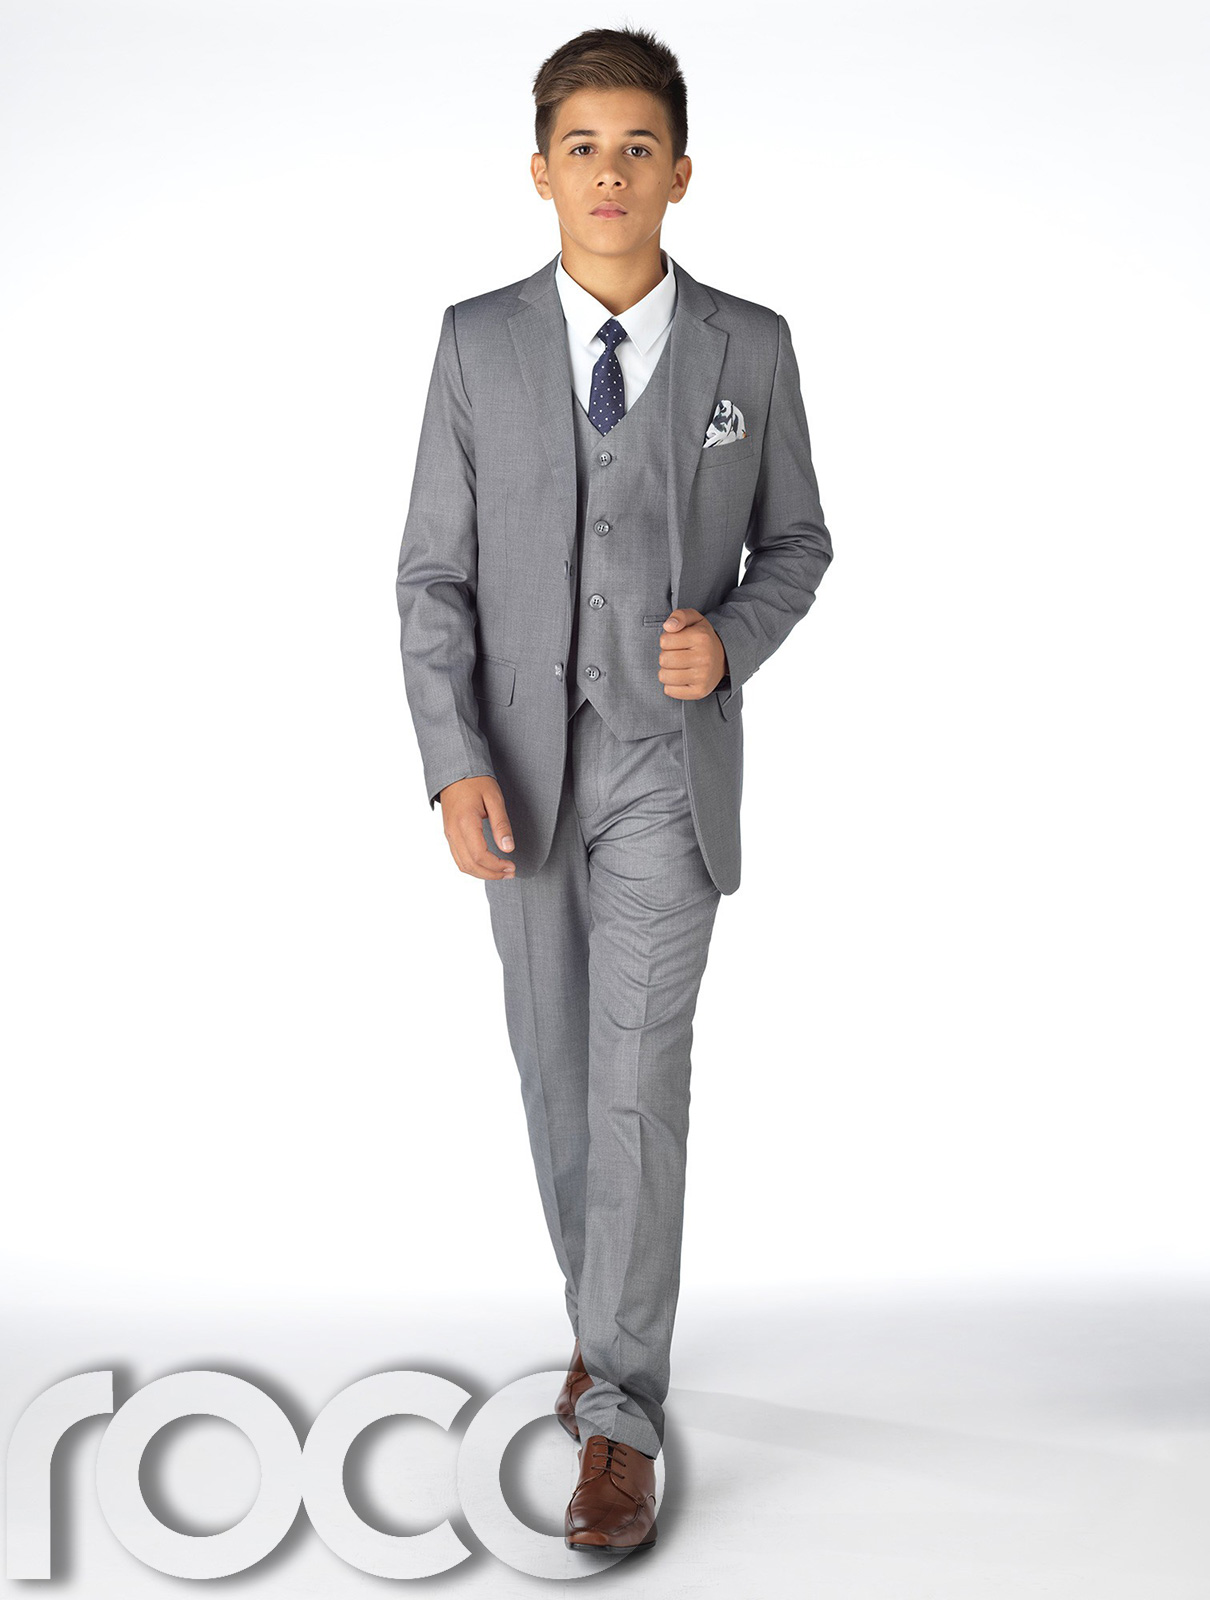 Shop for boys dark grey suit online at Target. Free shipping on purchases over $35 and save 5% every day with your Target REDcard.